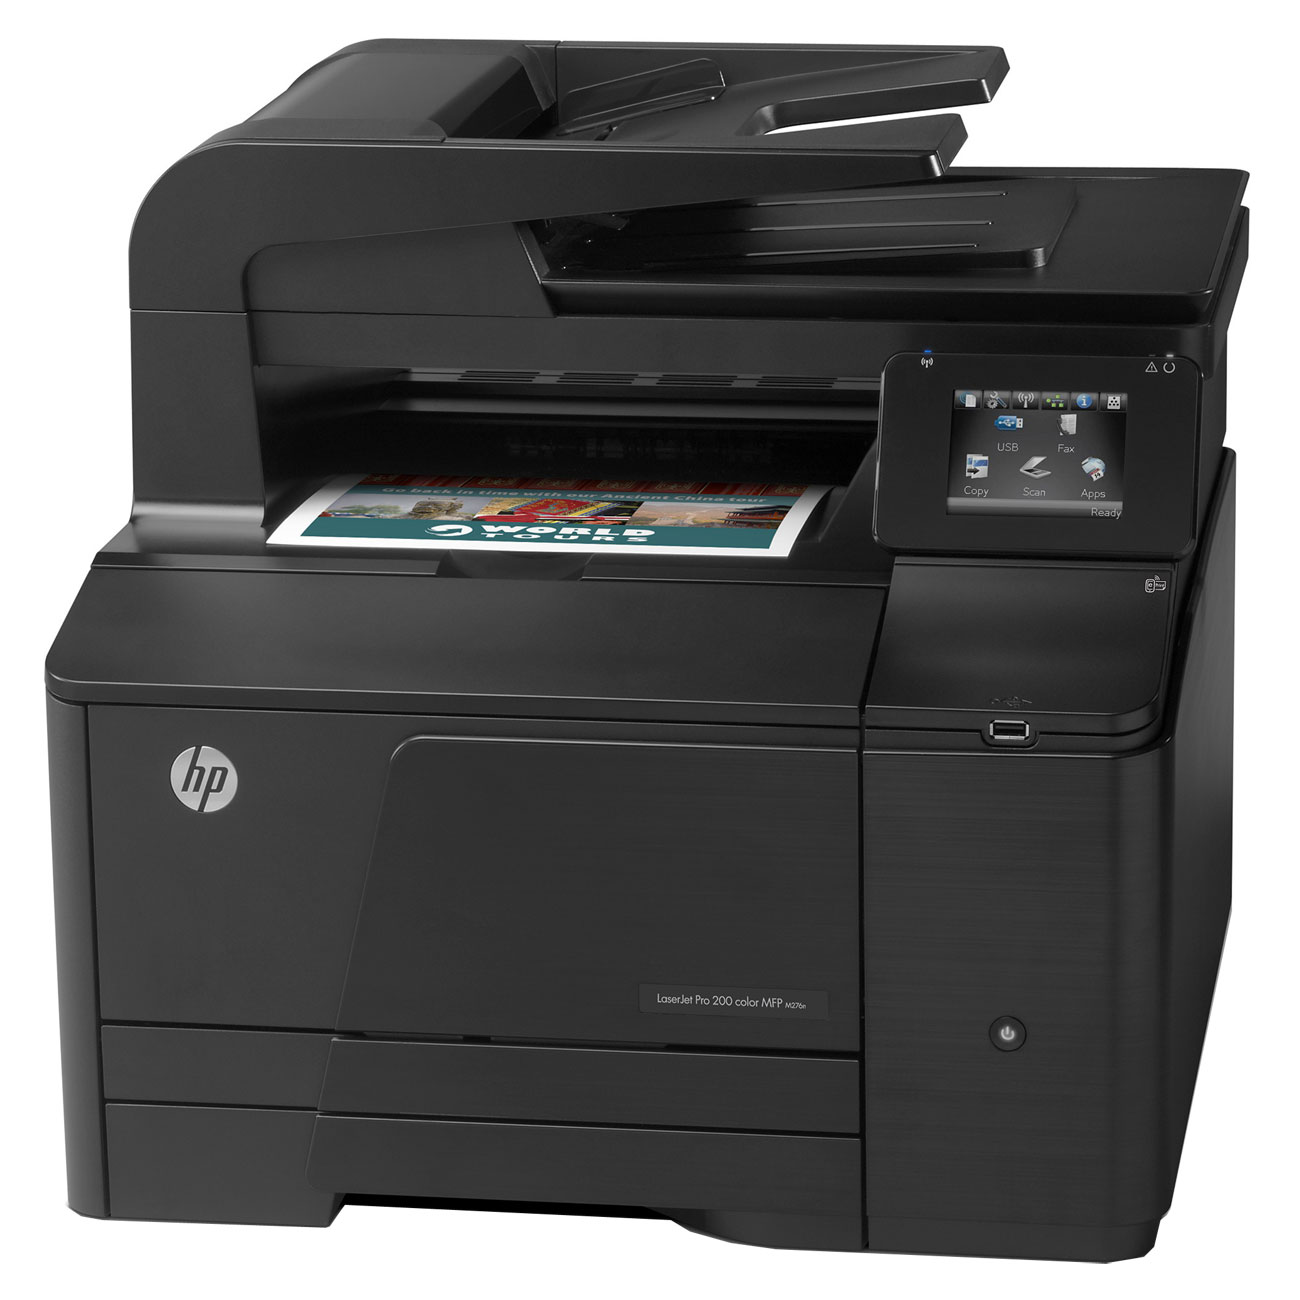 hp laserjet pro 200 color mfp m276n cf144a imprimante. Black Bedroom Furniture Sets. Home Design Ideas